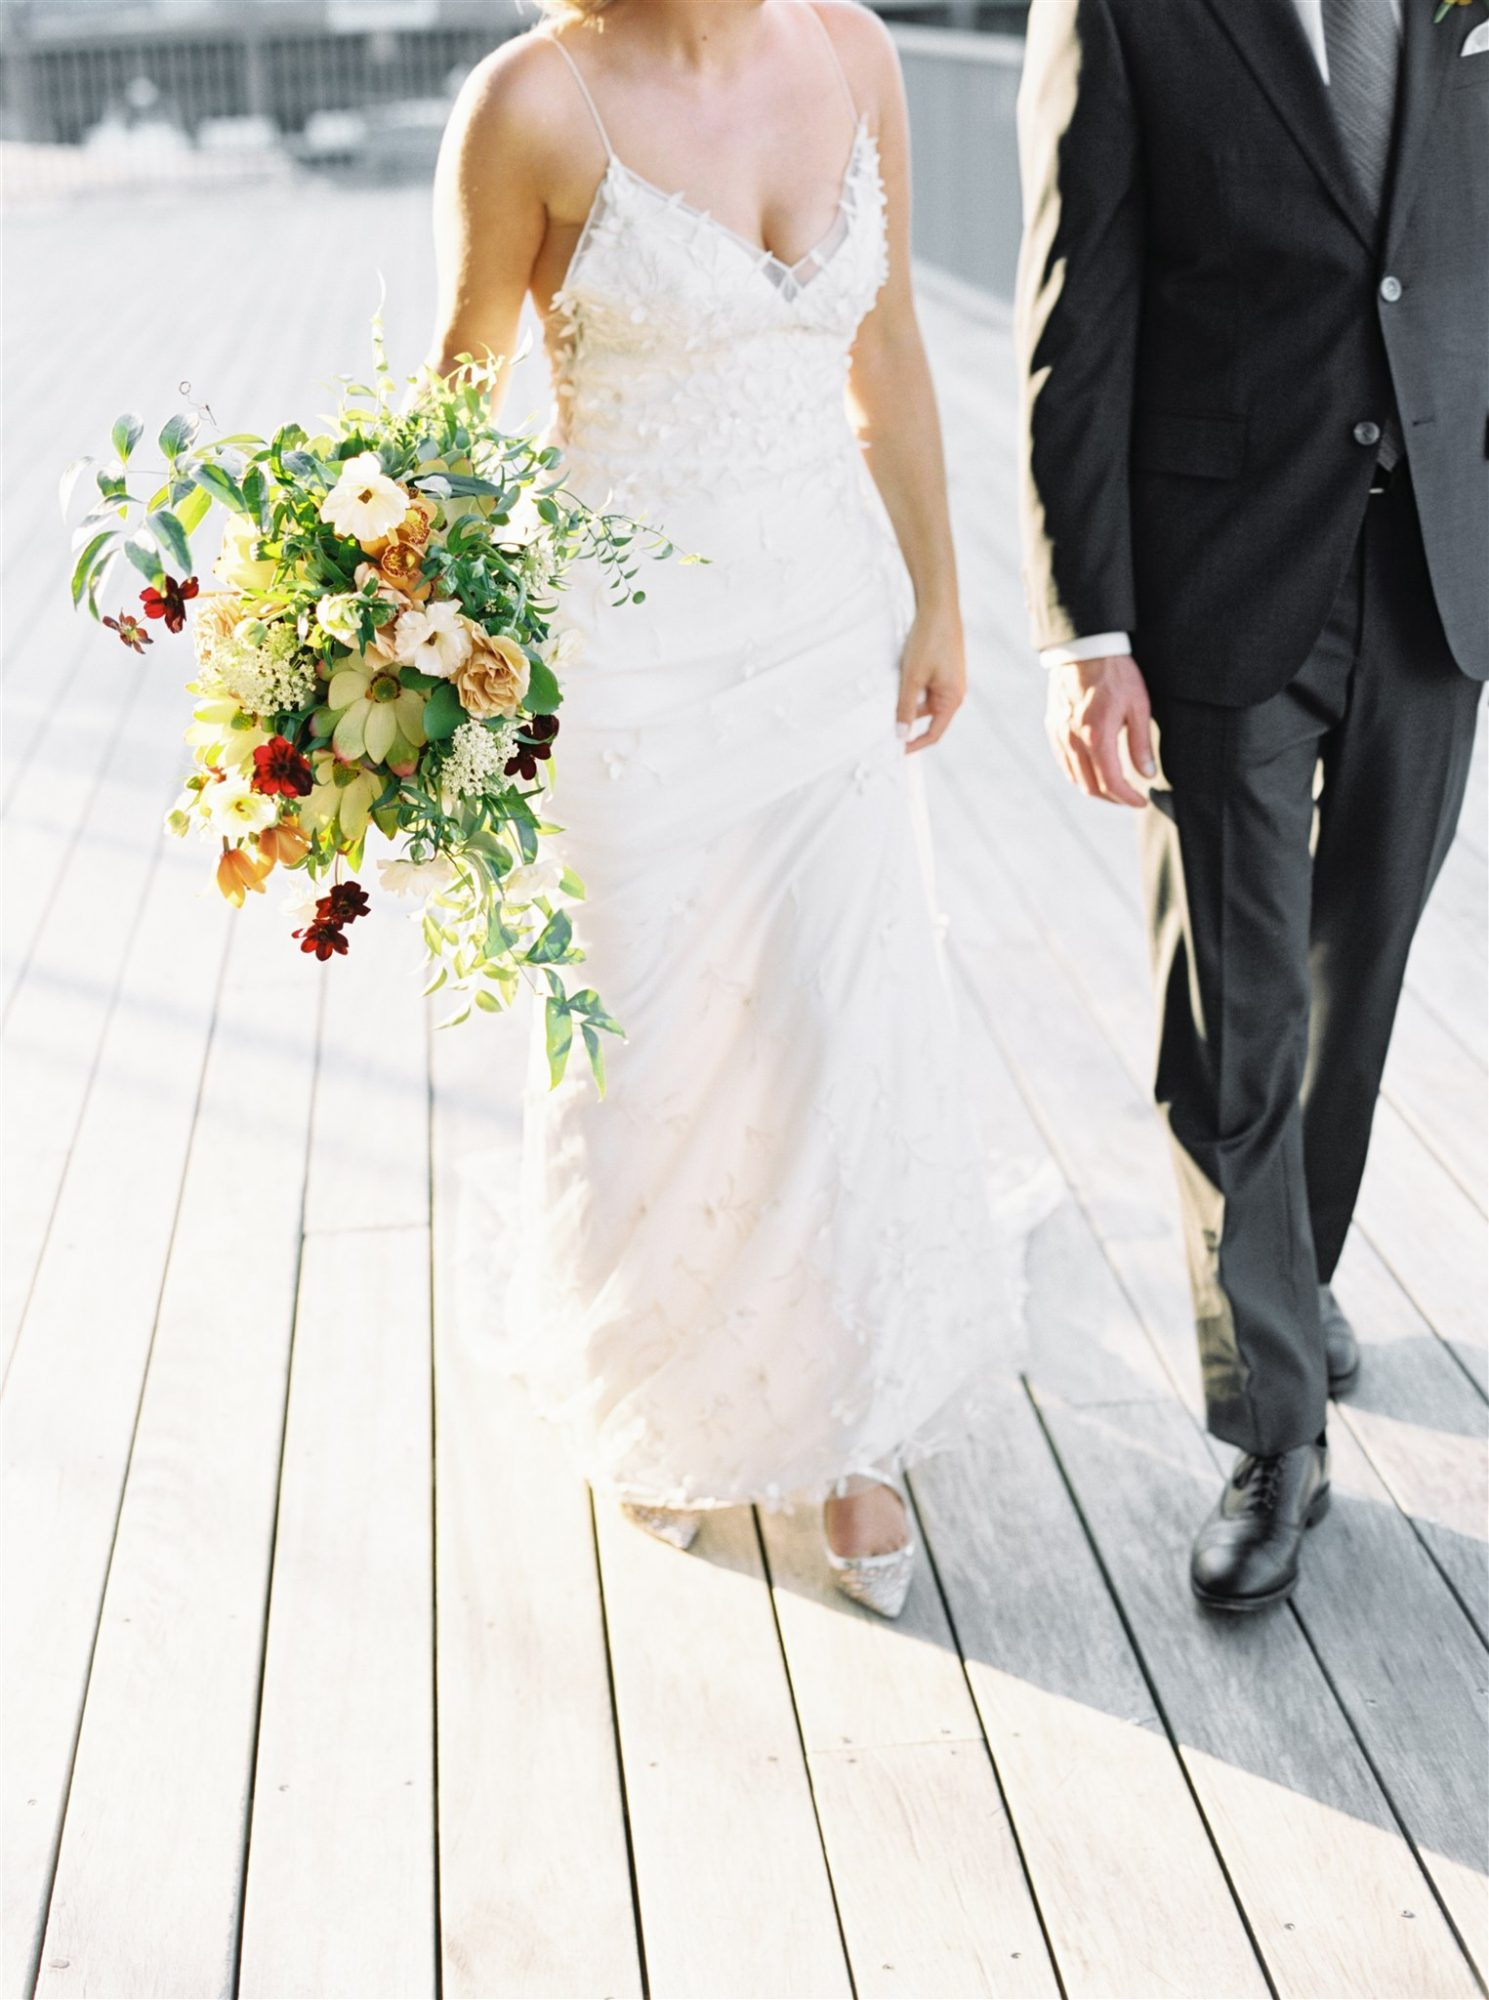 outdoor close-up bride's dress and bouquet